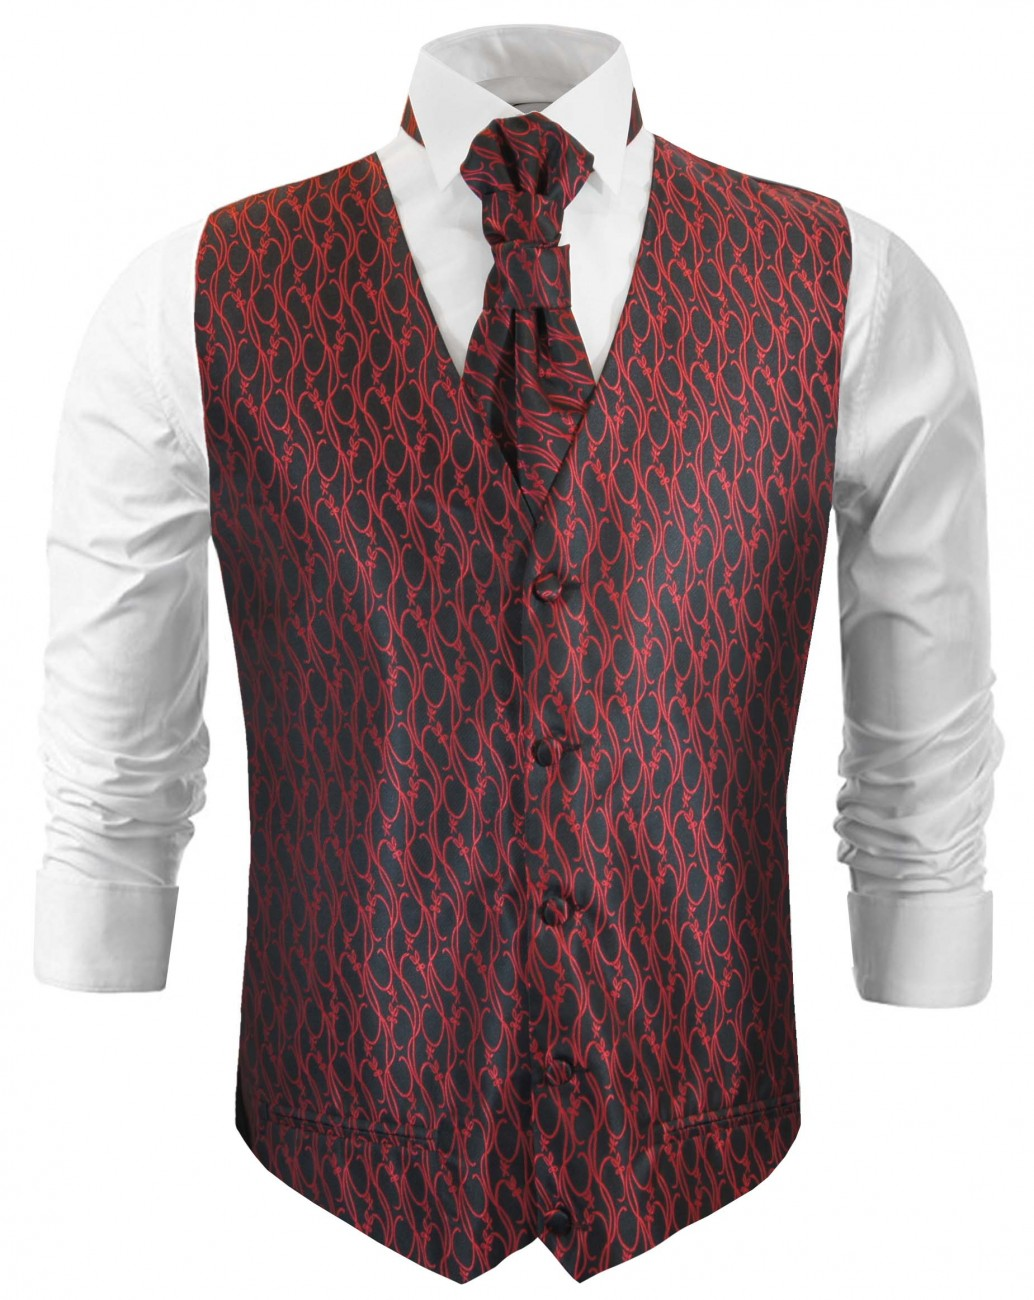 Wedding waistcoat with ascot tie red black baroque